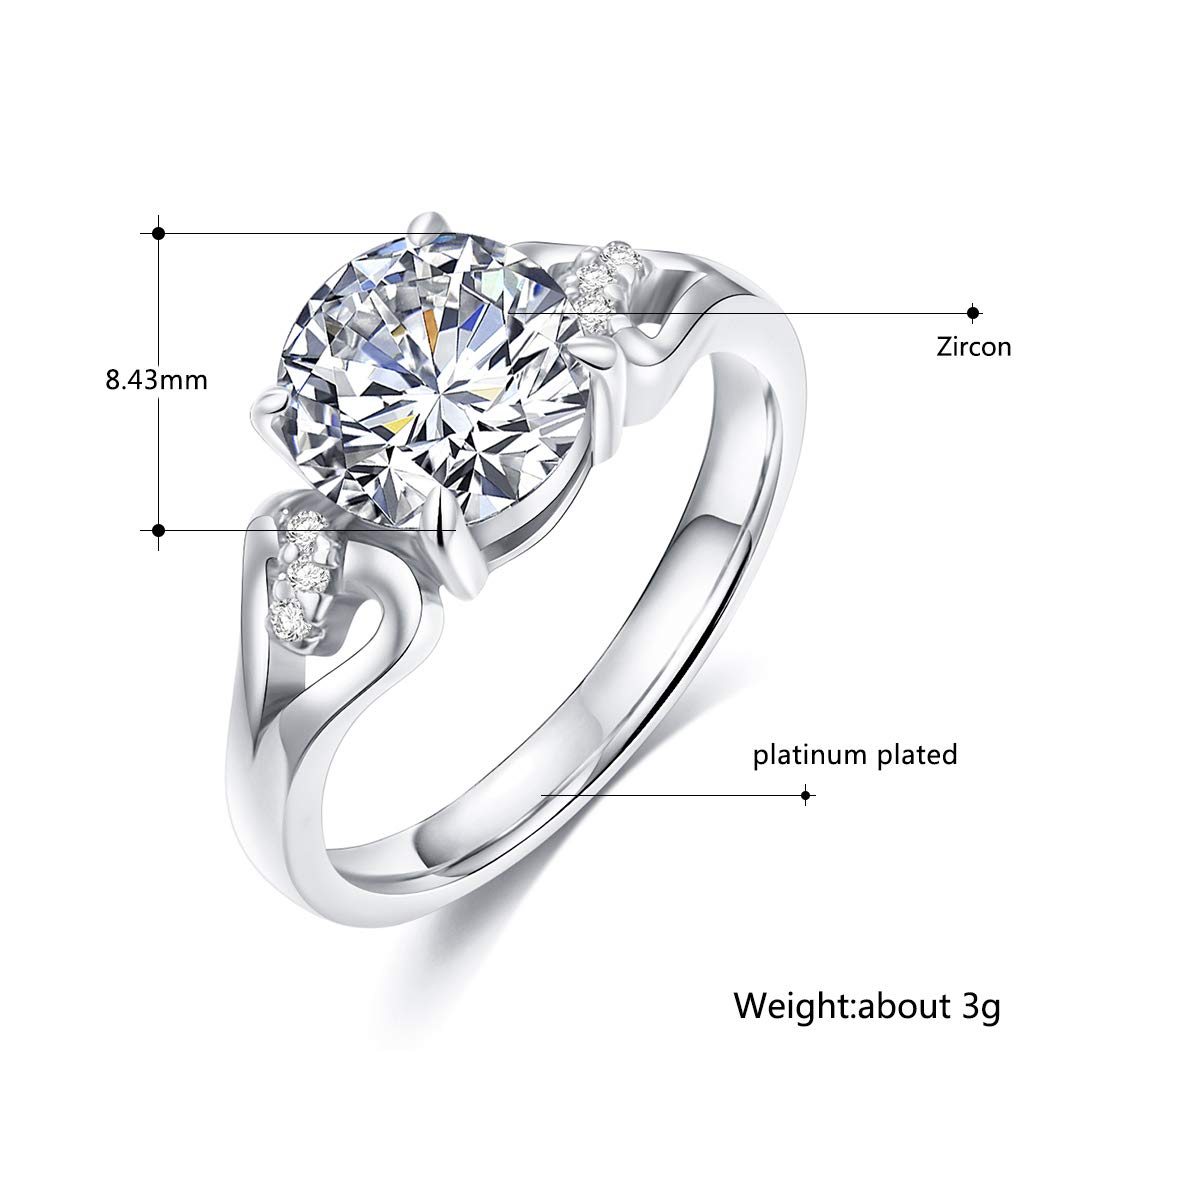 Round Cut Aaa Cubic Zirconia Sterling Silverrose Goldplated Bronze Base Engagement Ring Wedding Rings For Women Life Time Warranty Color Changed: Silver Rose Ring Wedding At Websimilar.org